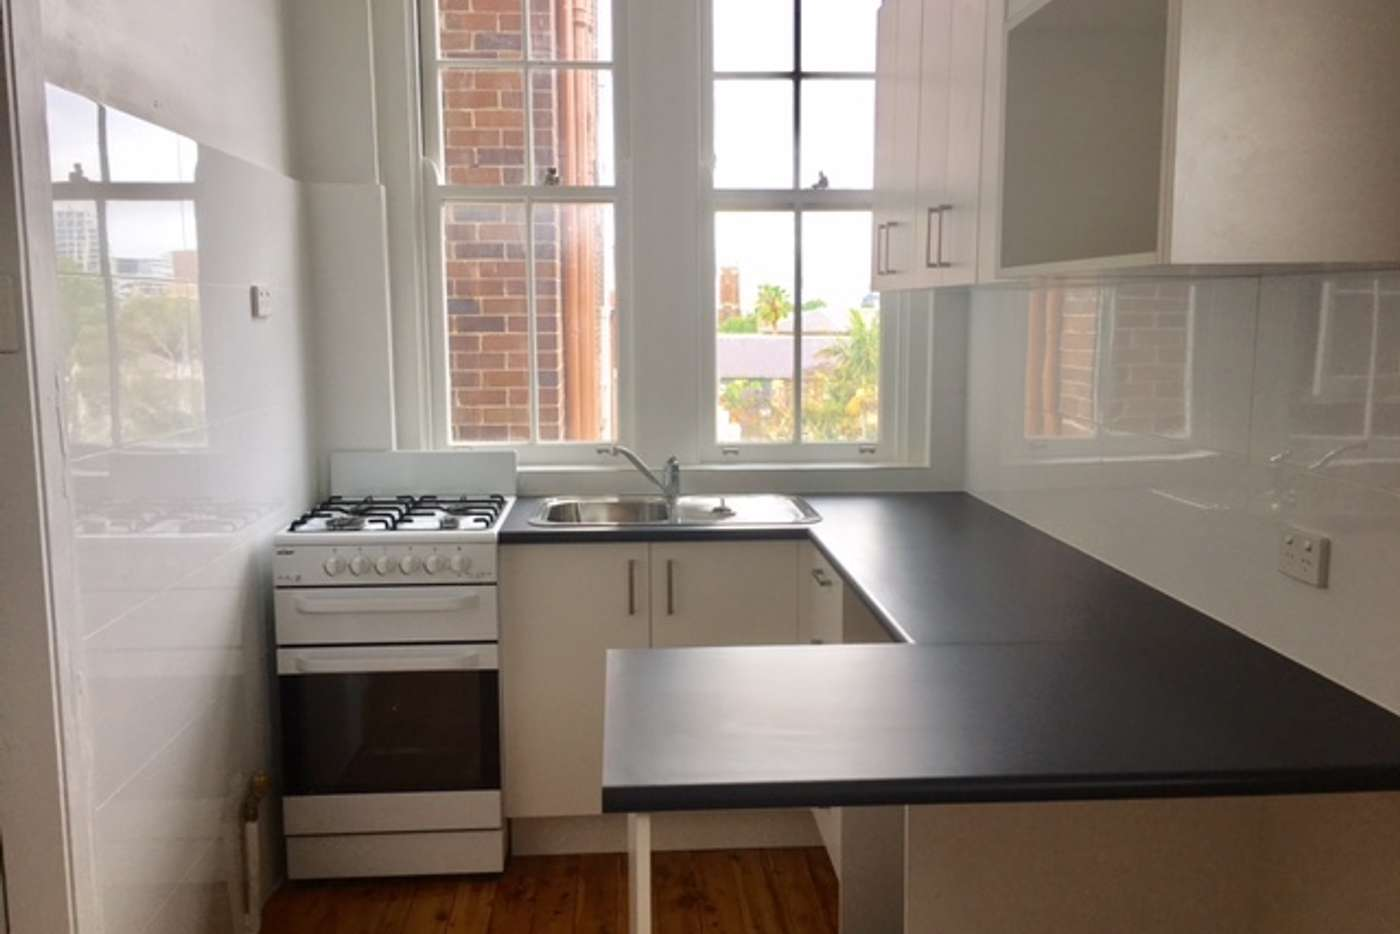 Main view of Homely studio listing, 66/5 Darley Street, Darlinghurst NSW 2010